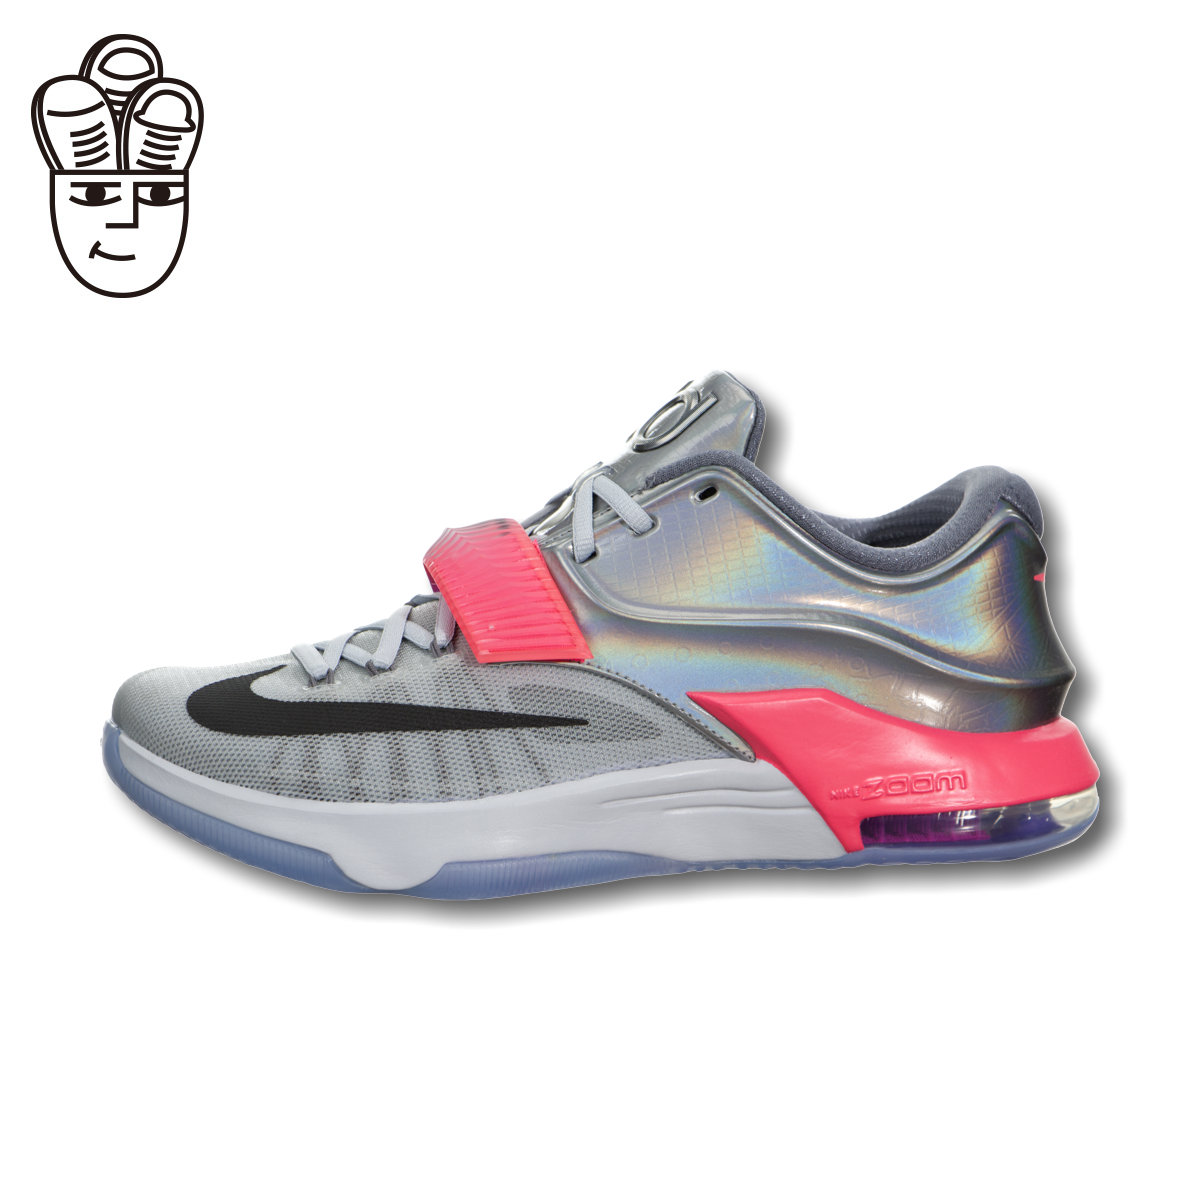 b1049ef83d32 Get Quotations · Nike kd vii durant nike 7 on behalf of the whole star  reeboks men basketball shoes